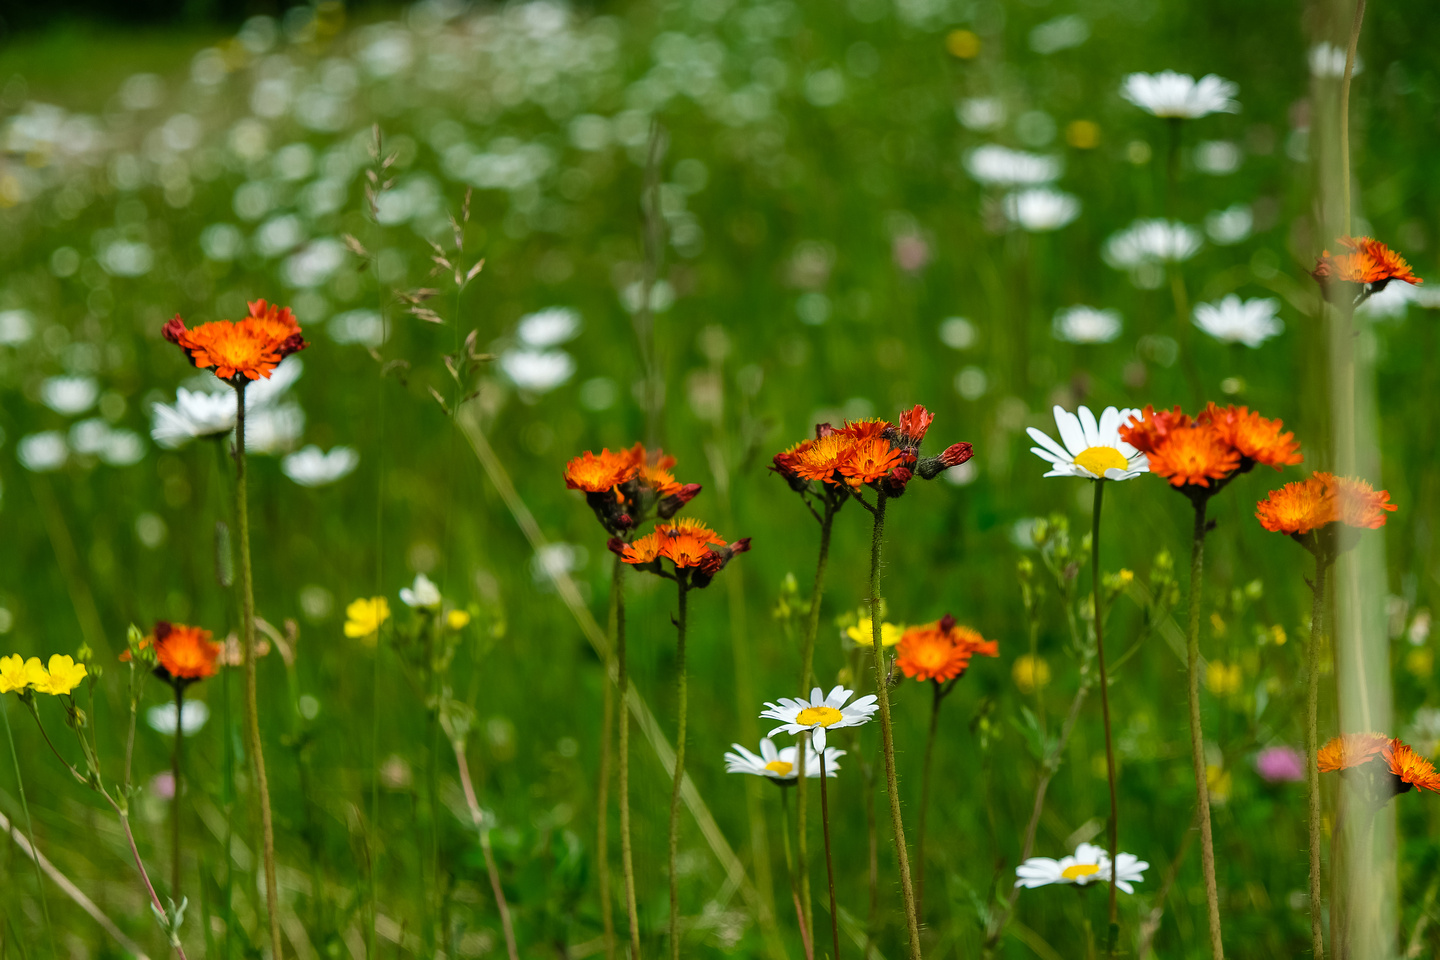 Orange Hawkweed and Oxeye Daisies - both non native species.